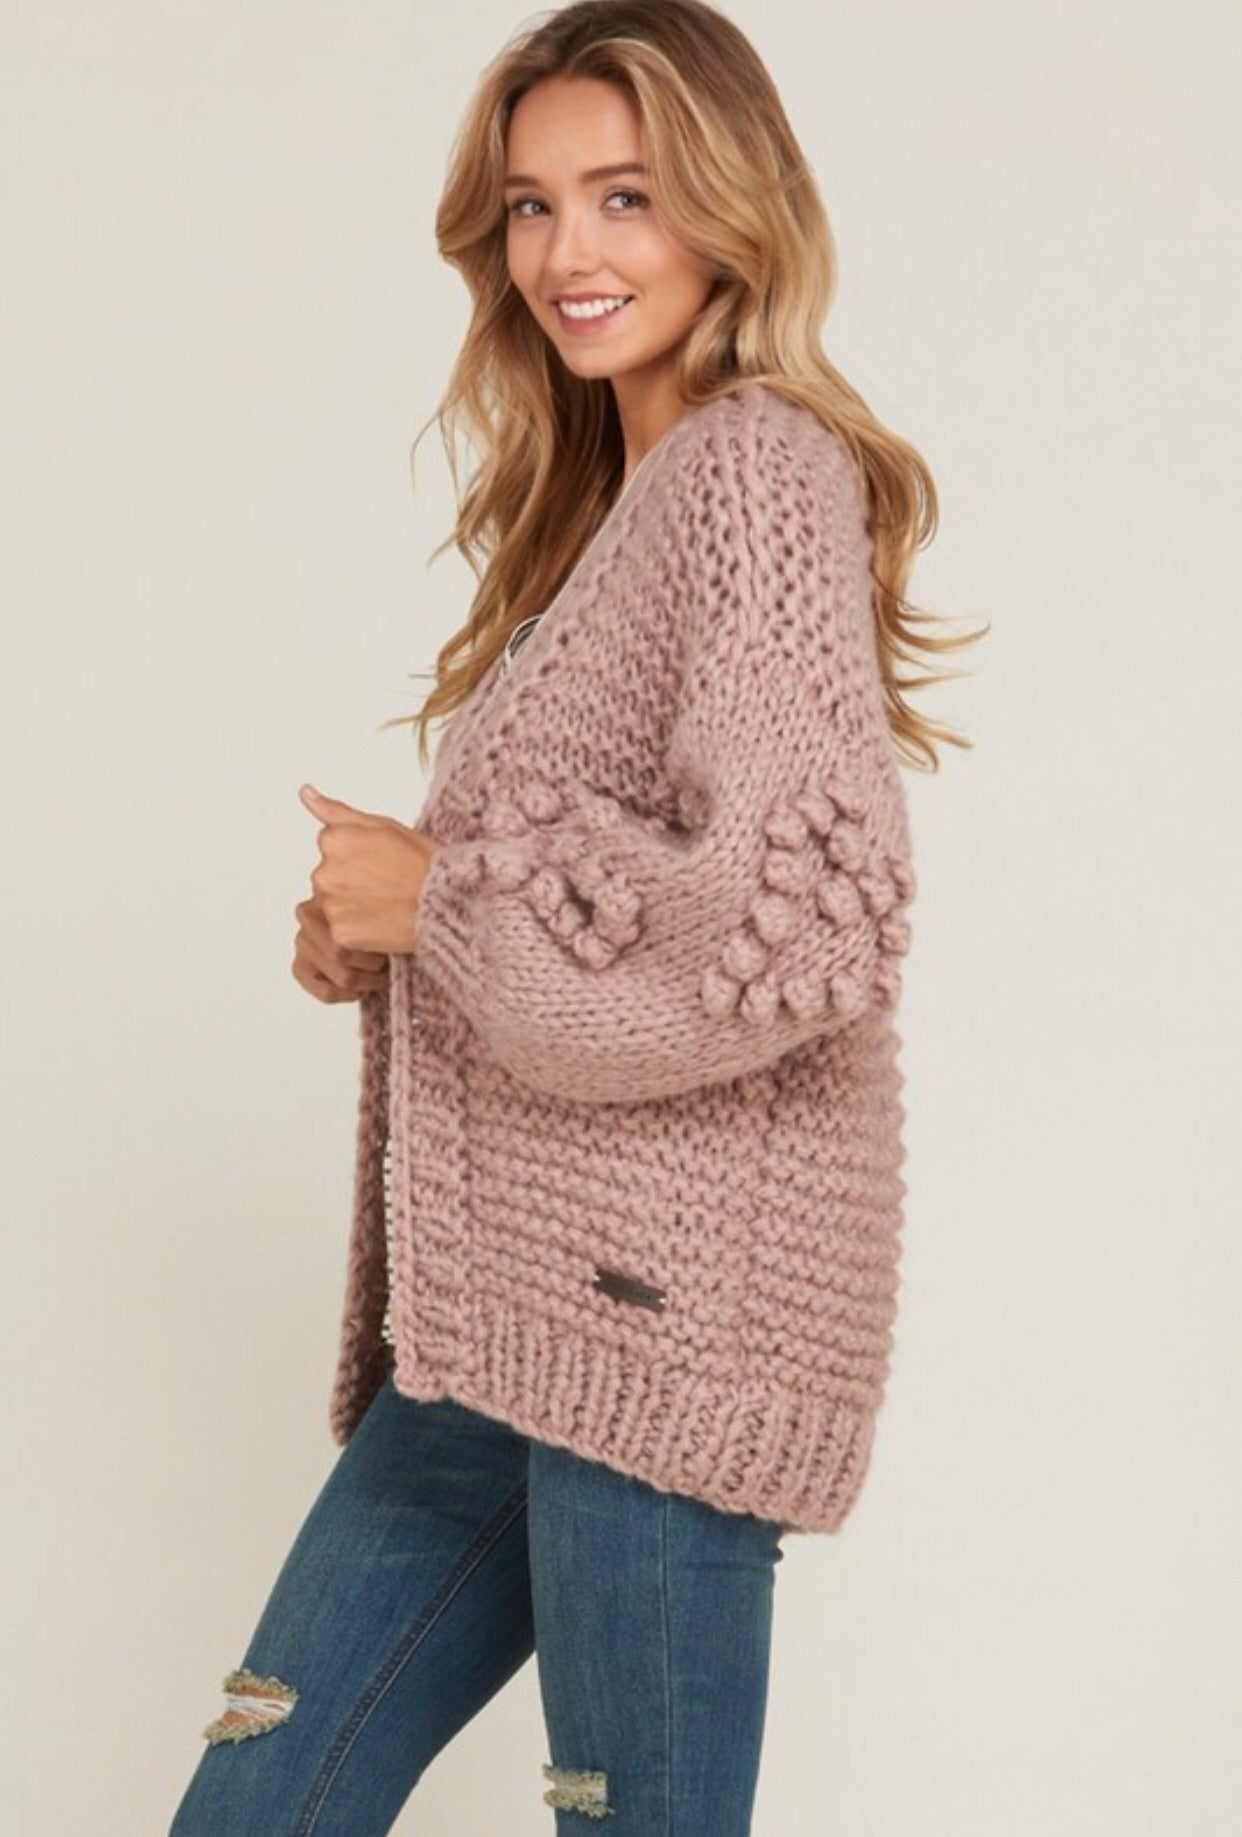 HAND SPUN POPCORN BALL SWEATER